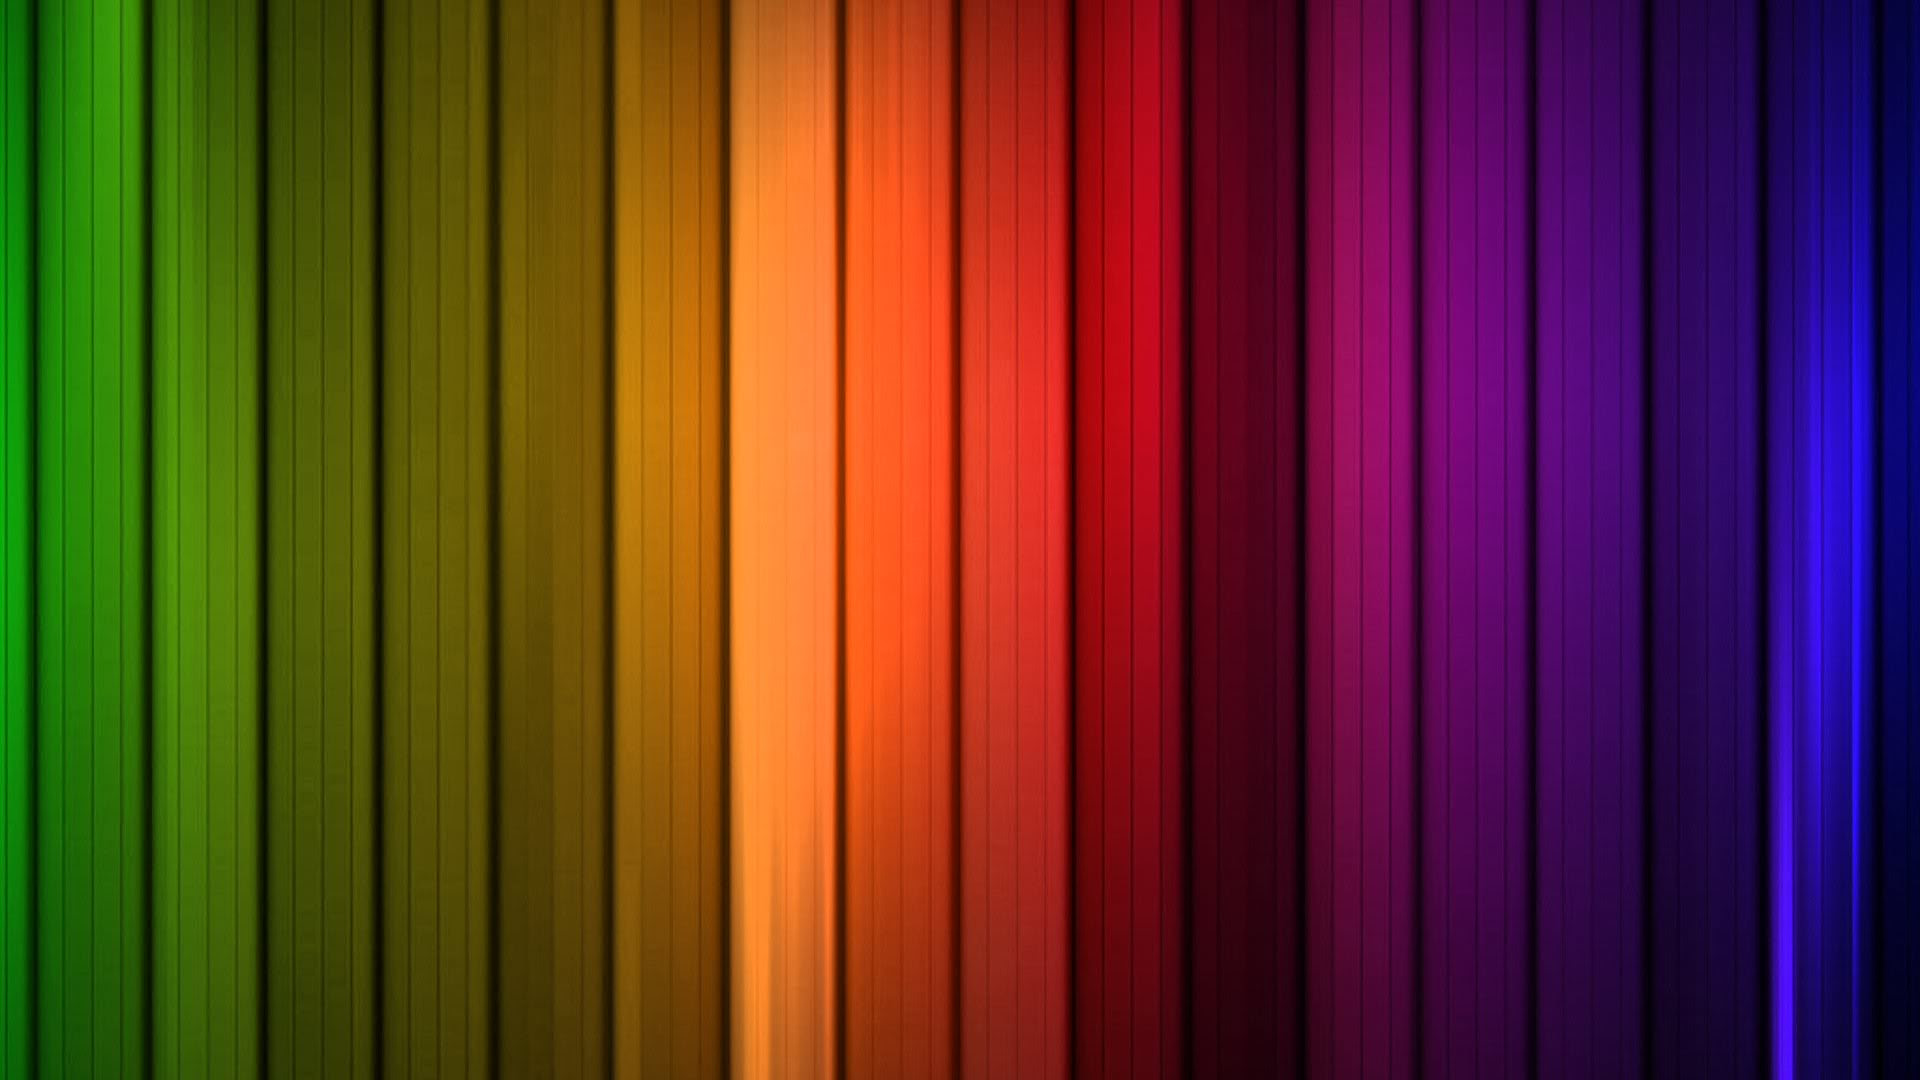 Wallpaper Background Colorful Background Hd 24469